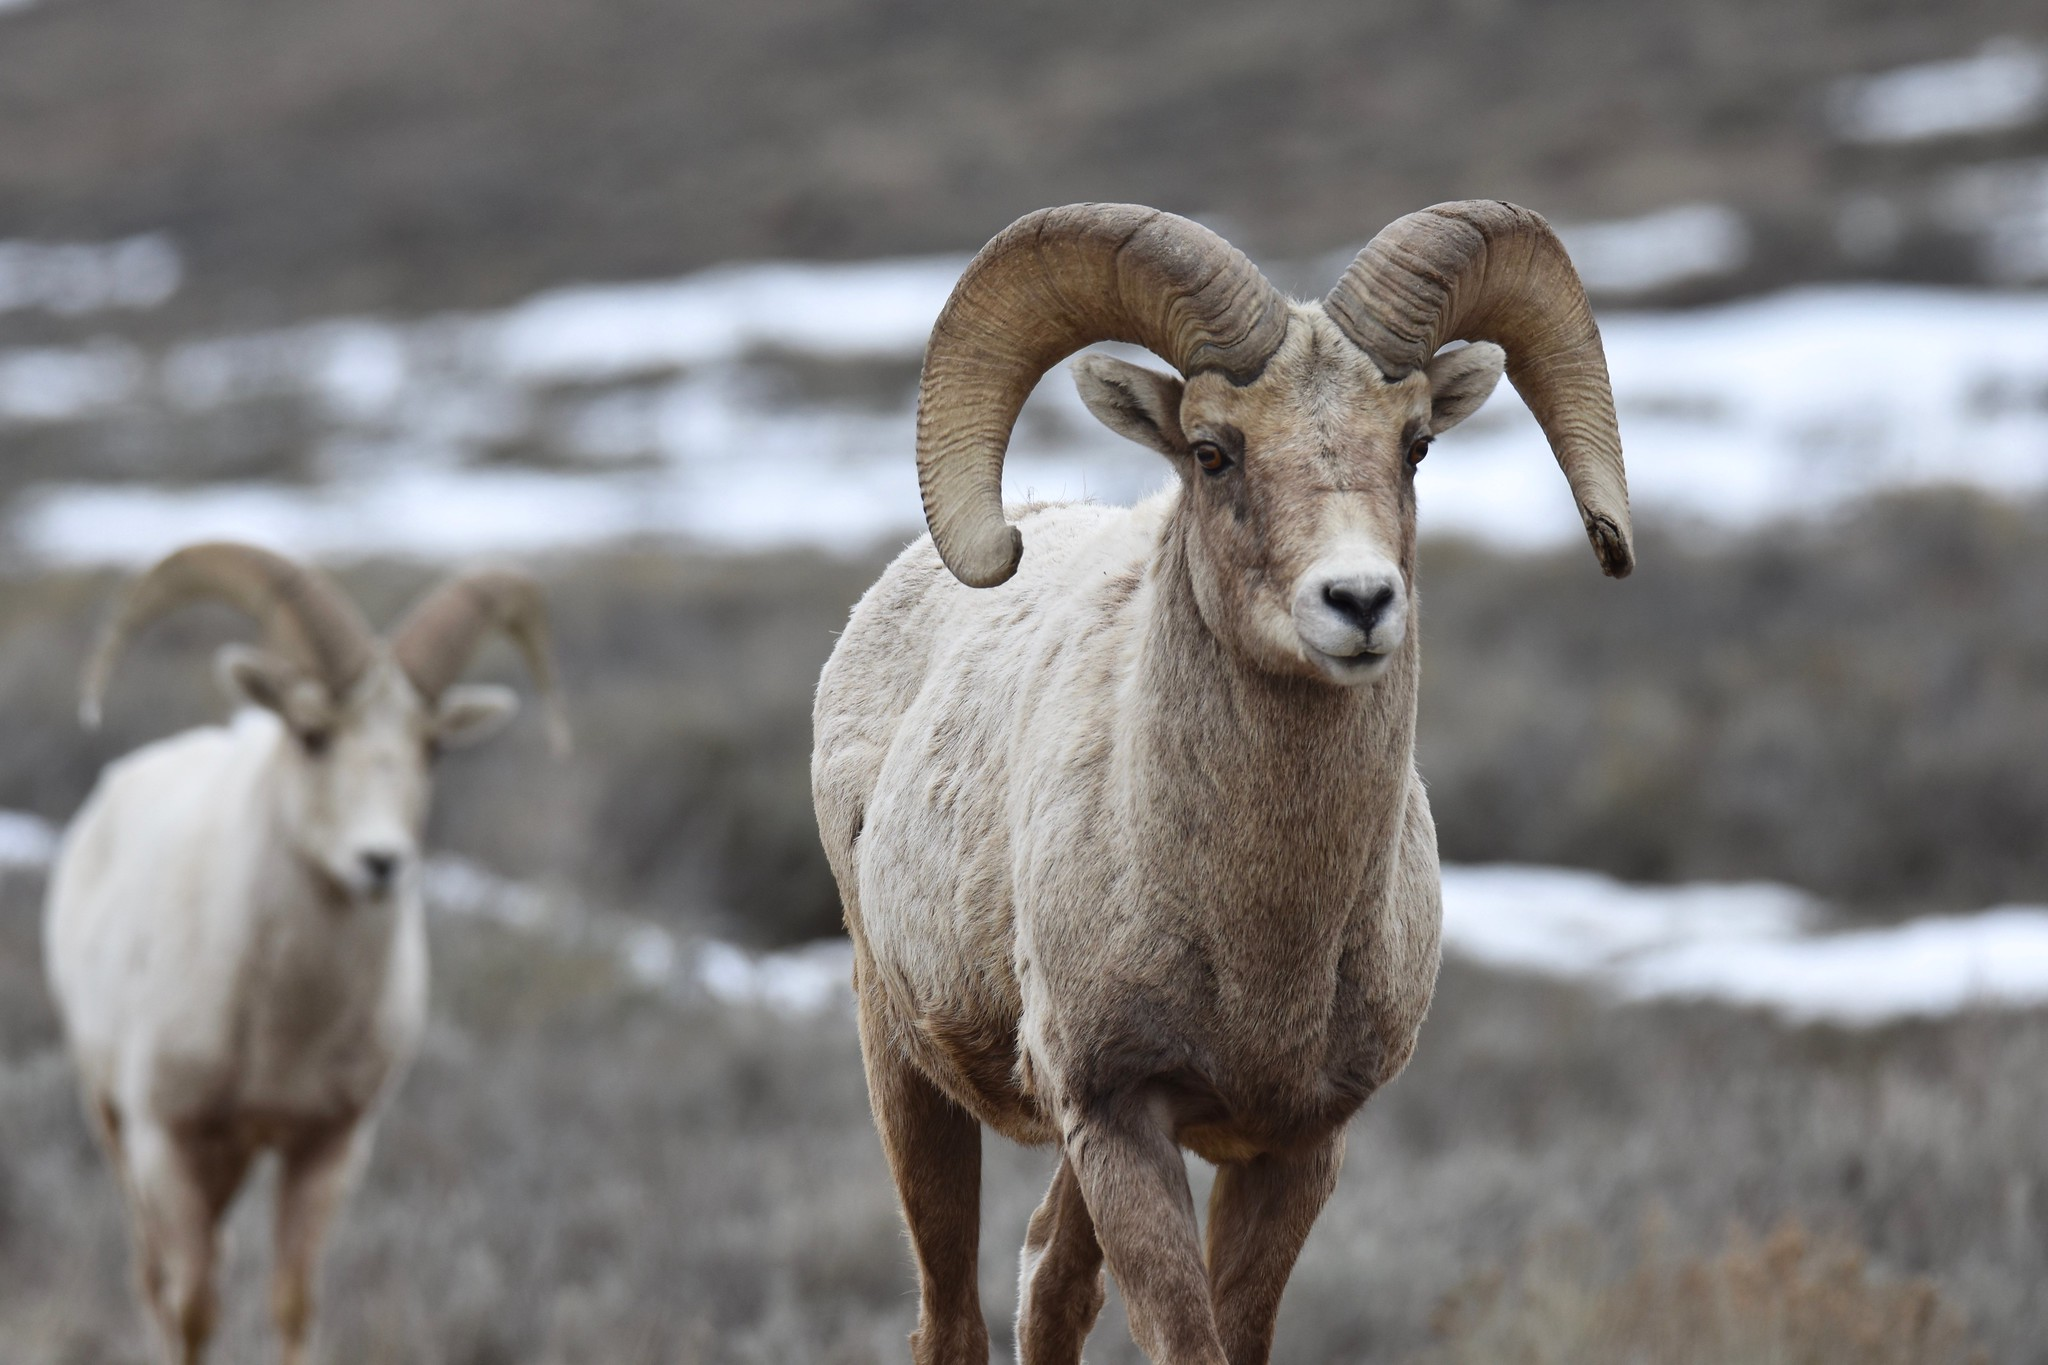 Free download high resolution image - free image free photo free stock image public domain picture -Rocky Mountain bighorn sheep